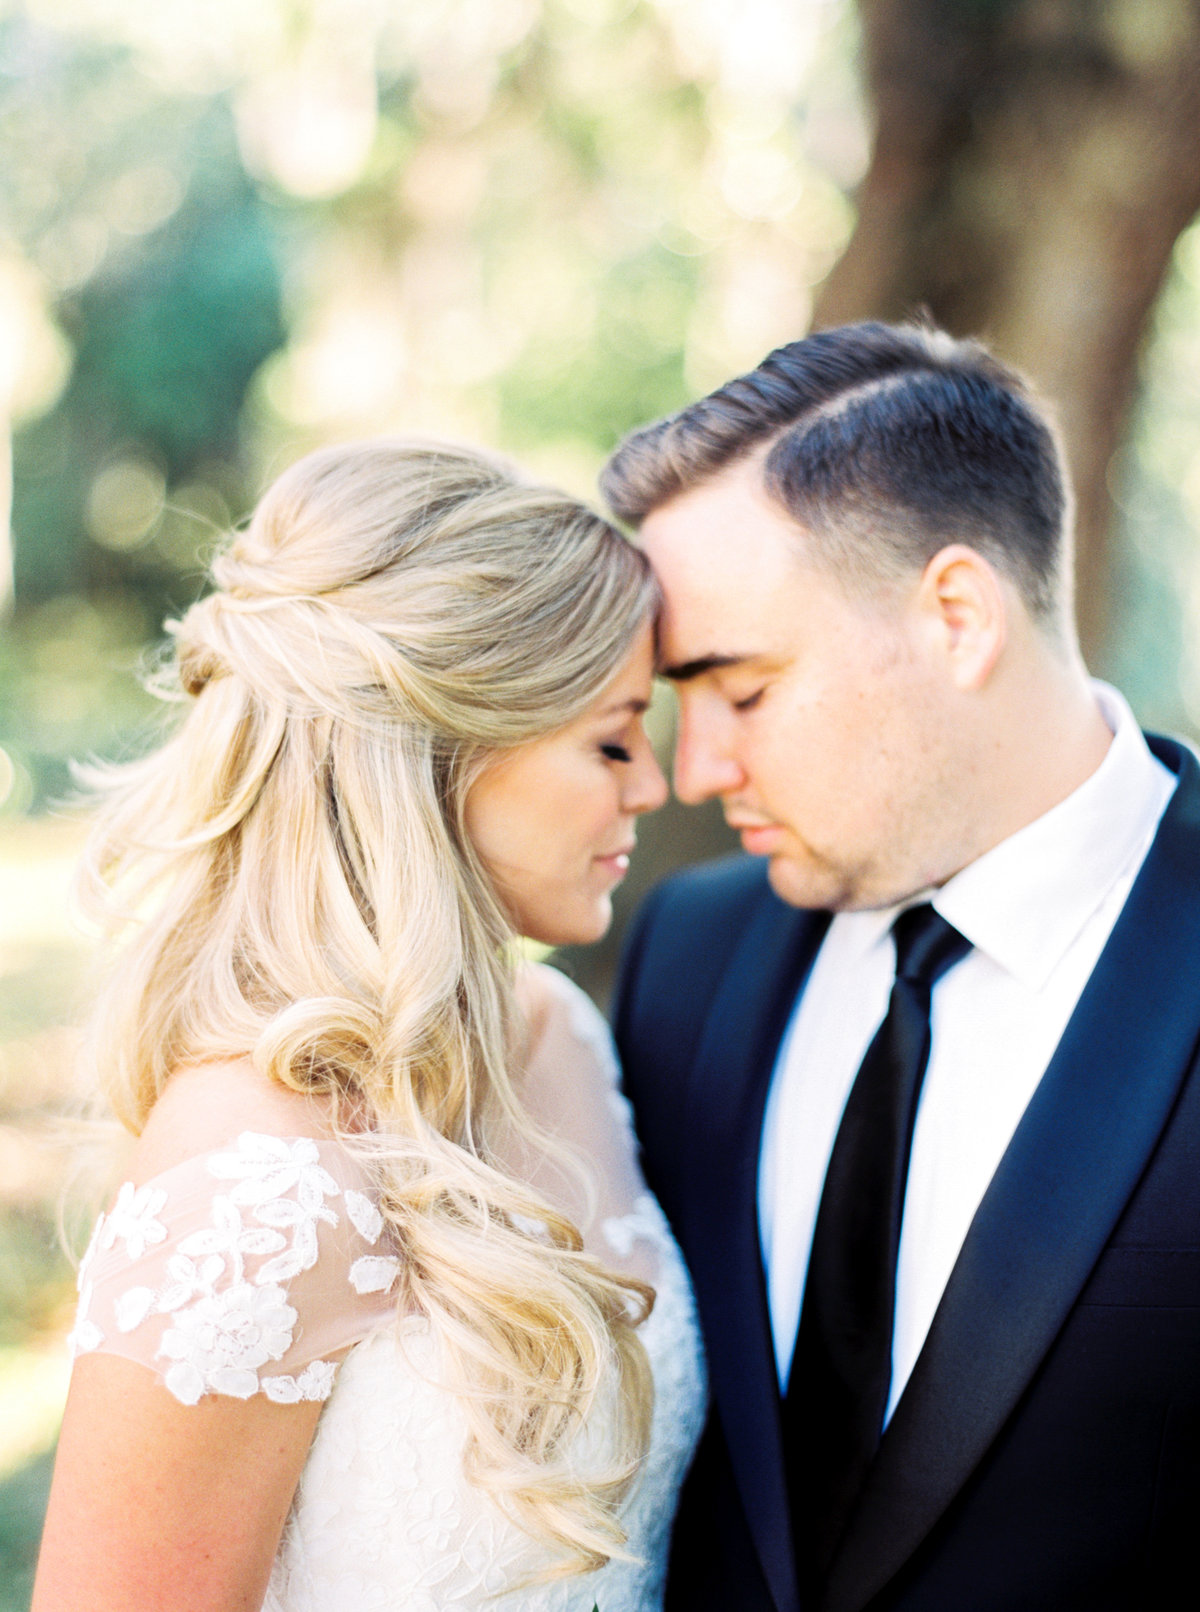 Charleston Wedding Photographer - Mary Claire Photography-10-2